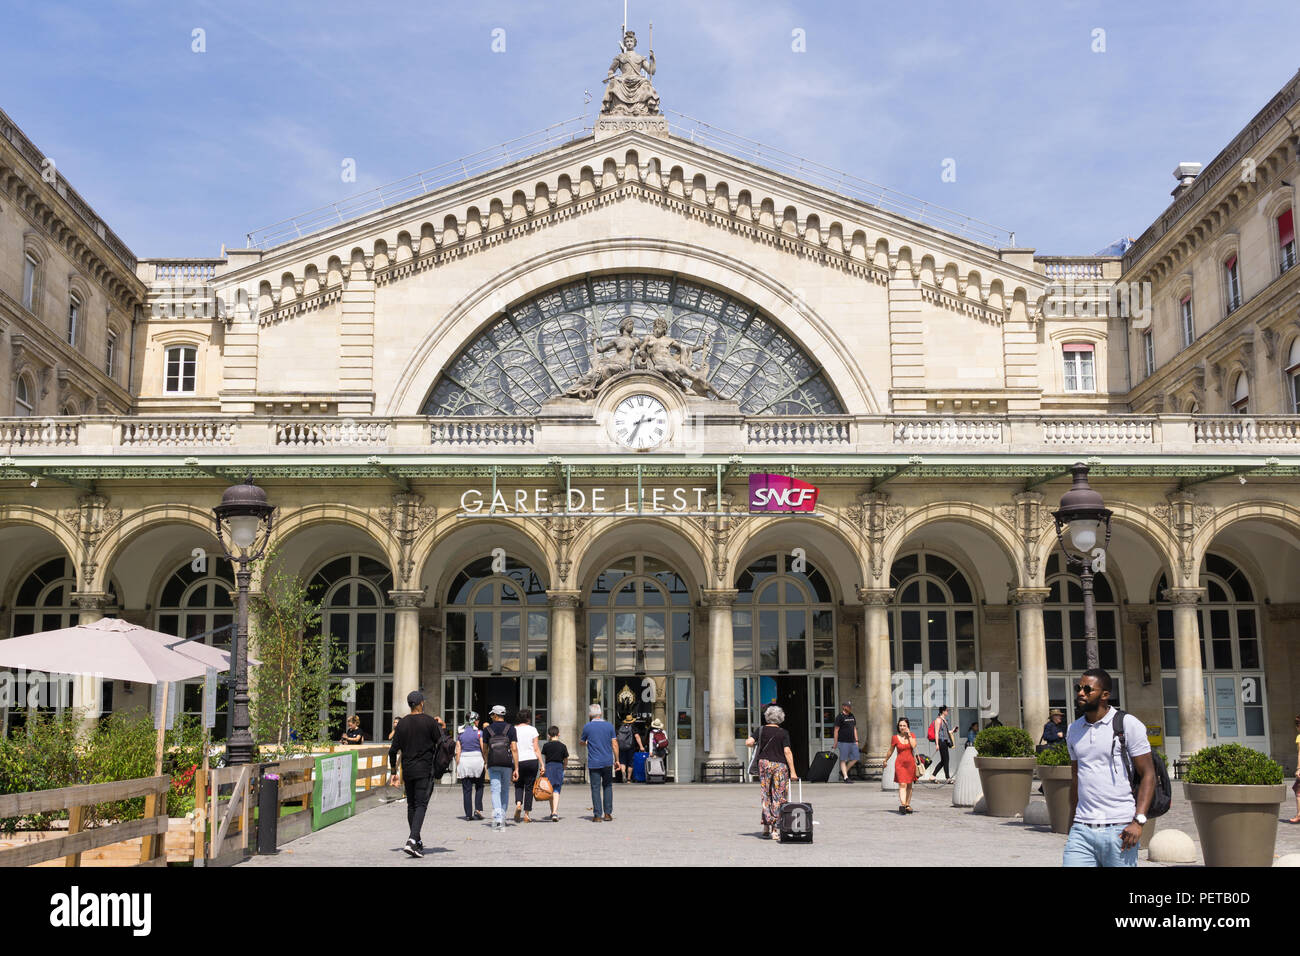 Gare De Paris Gare De L Est Train Station In Paris France Stock Photo